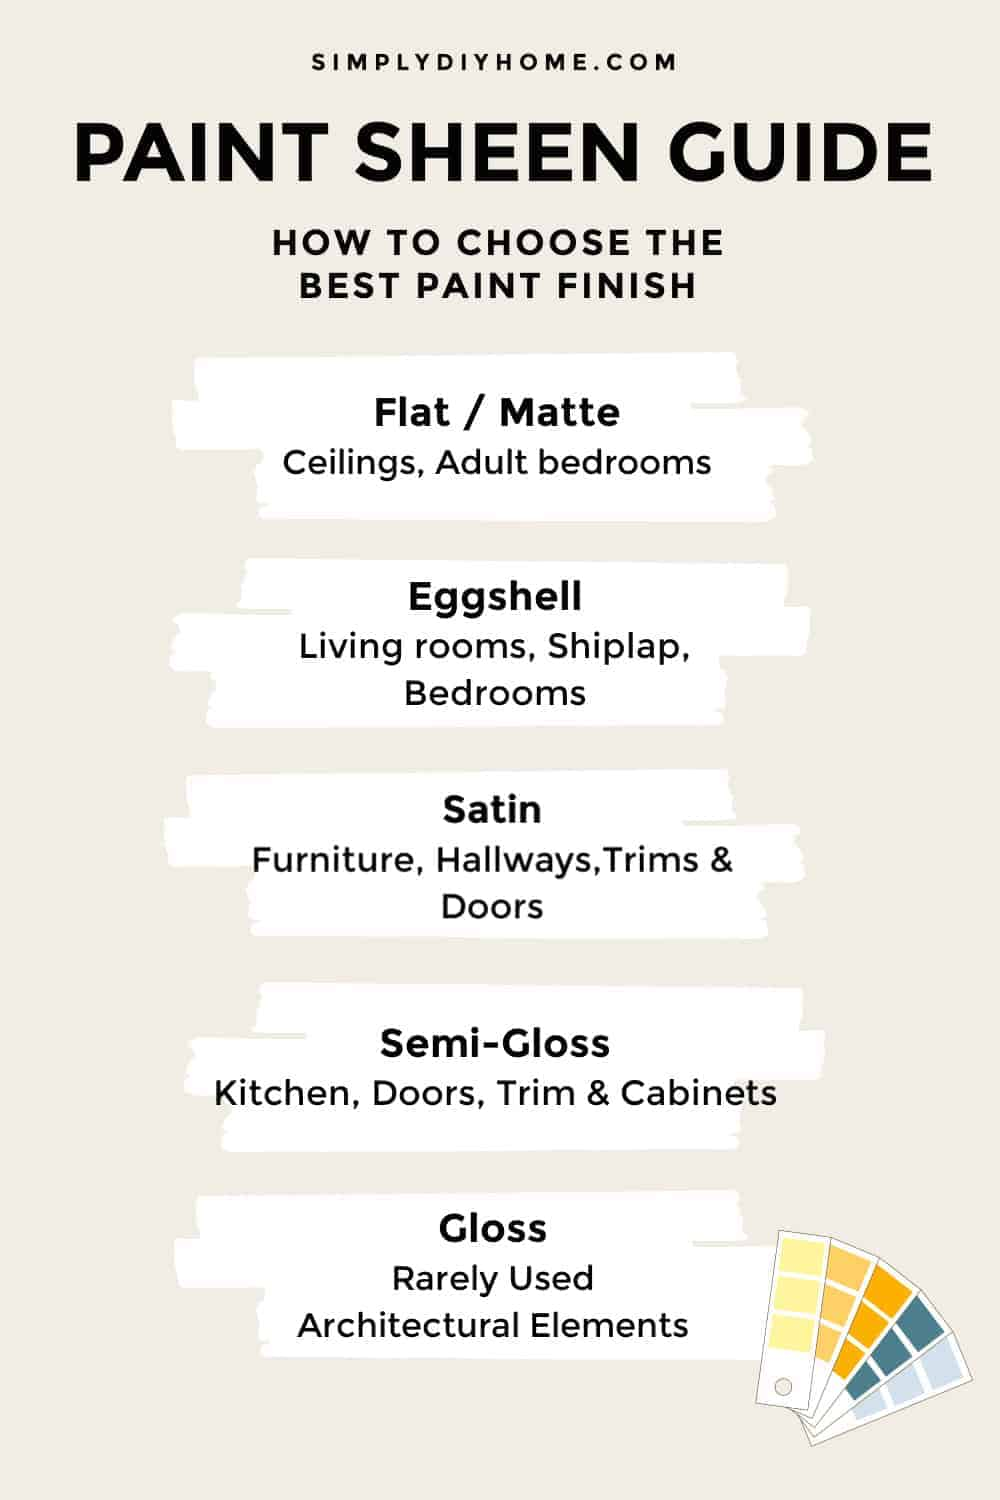 CHOOSING THE RIGHT PAINT FINISH-PAINTING 101